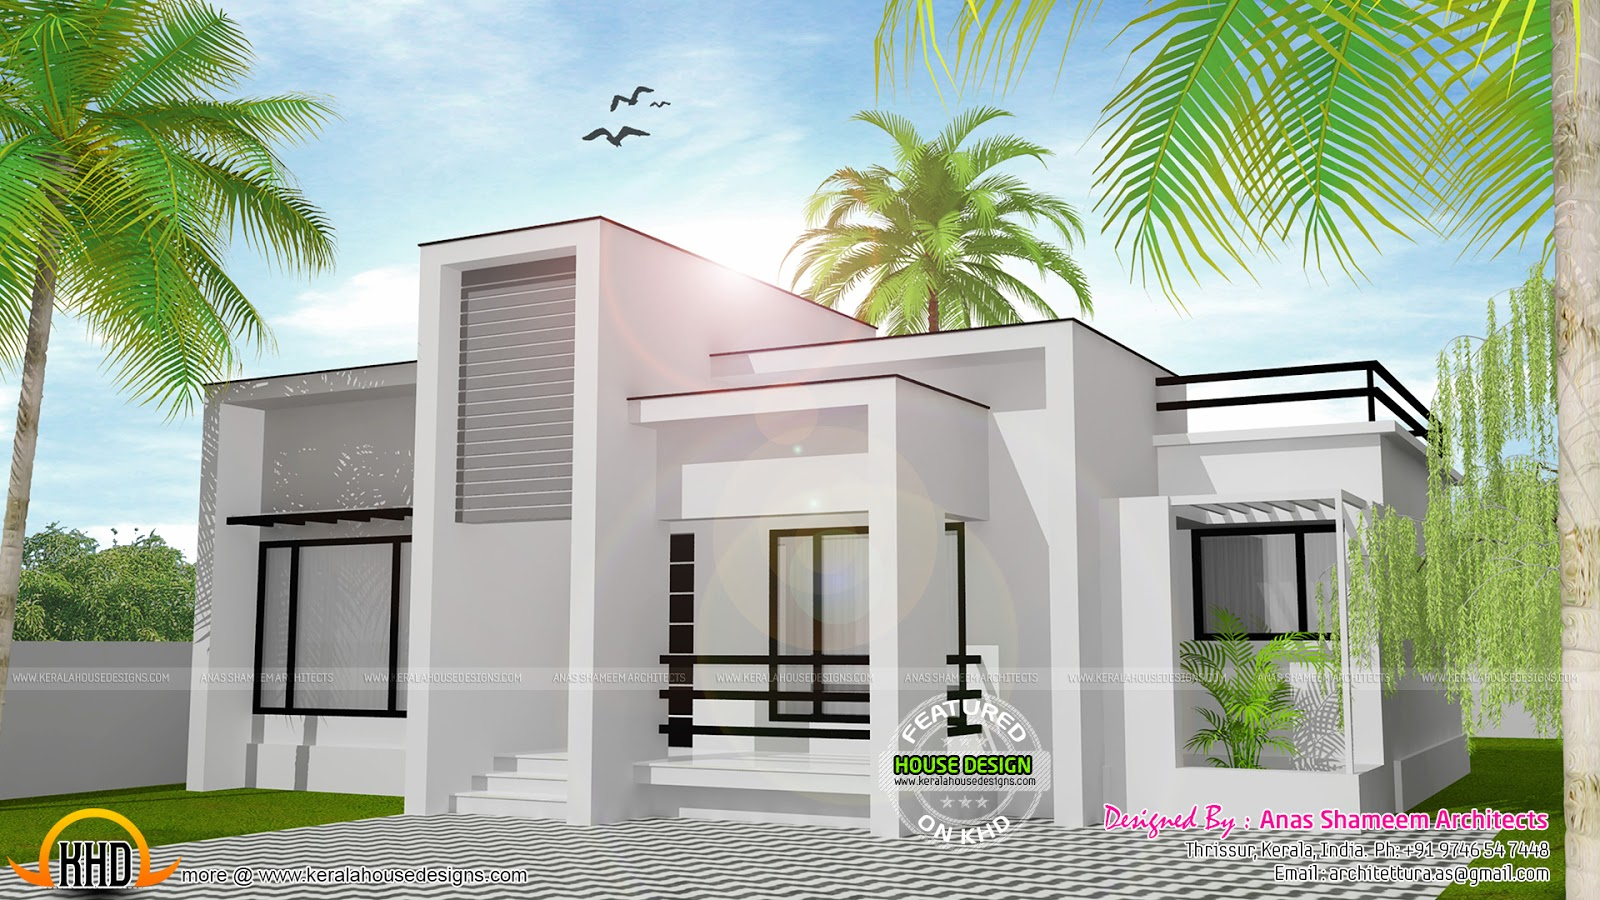 978 sq ft flat roof single floor home kerala home design for Small budget house plans in kerala